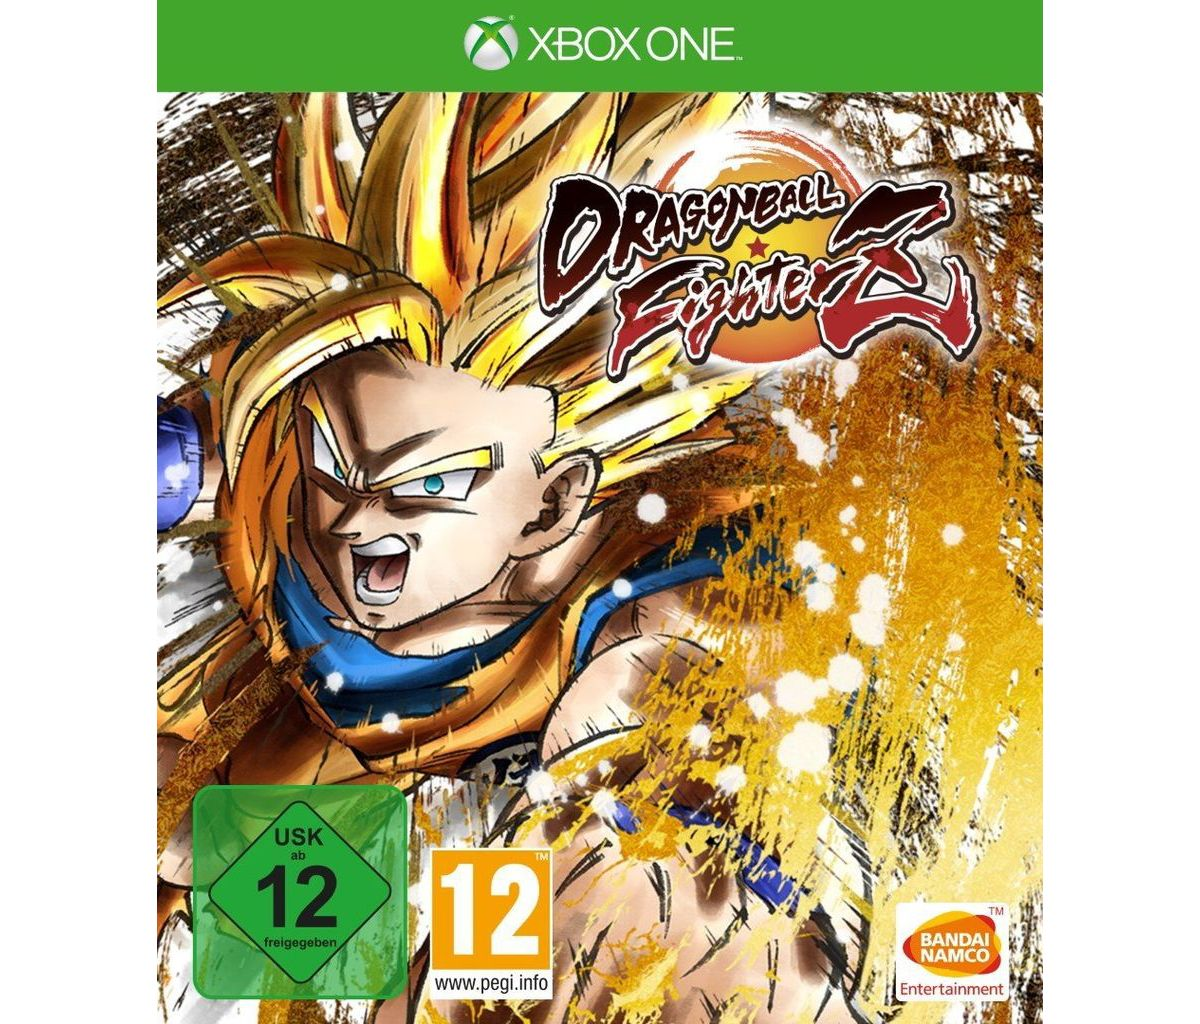 Bandai XBOX One - Spiel »DRAGON BALL FighterZ«